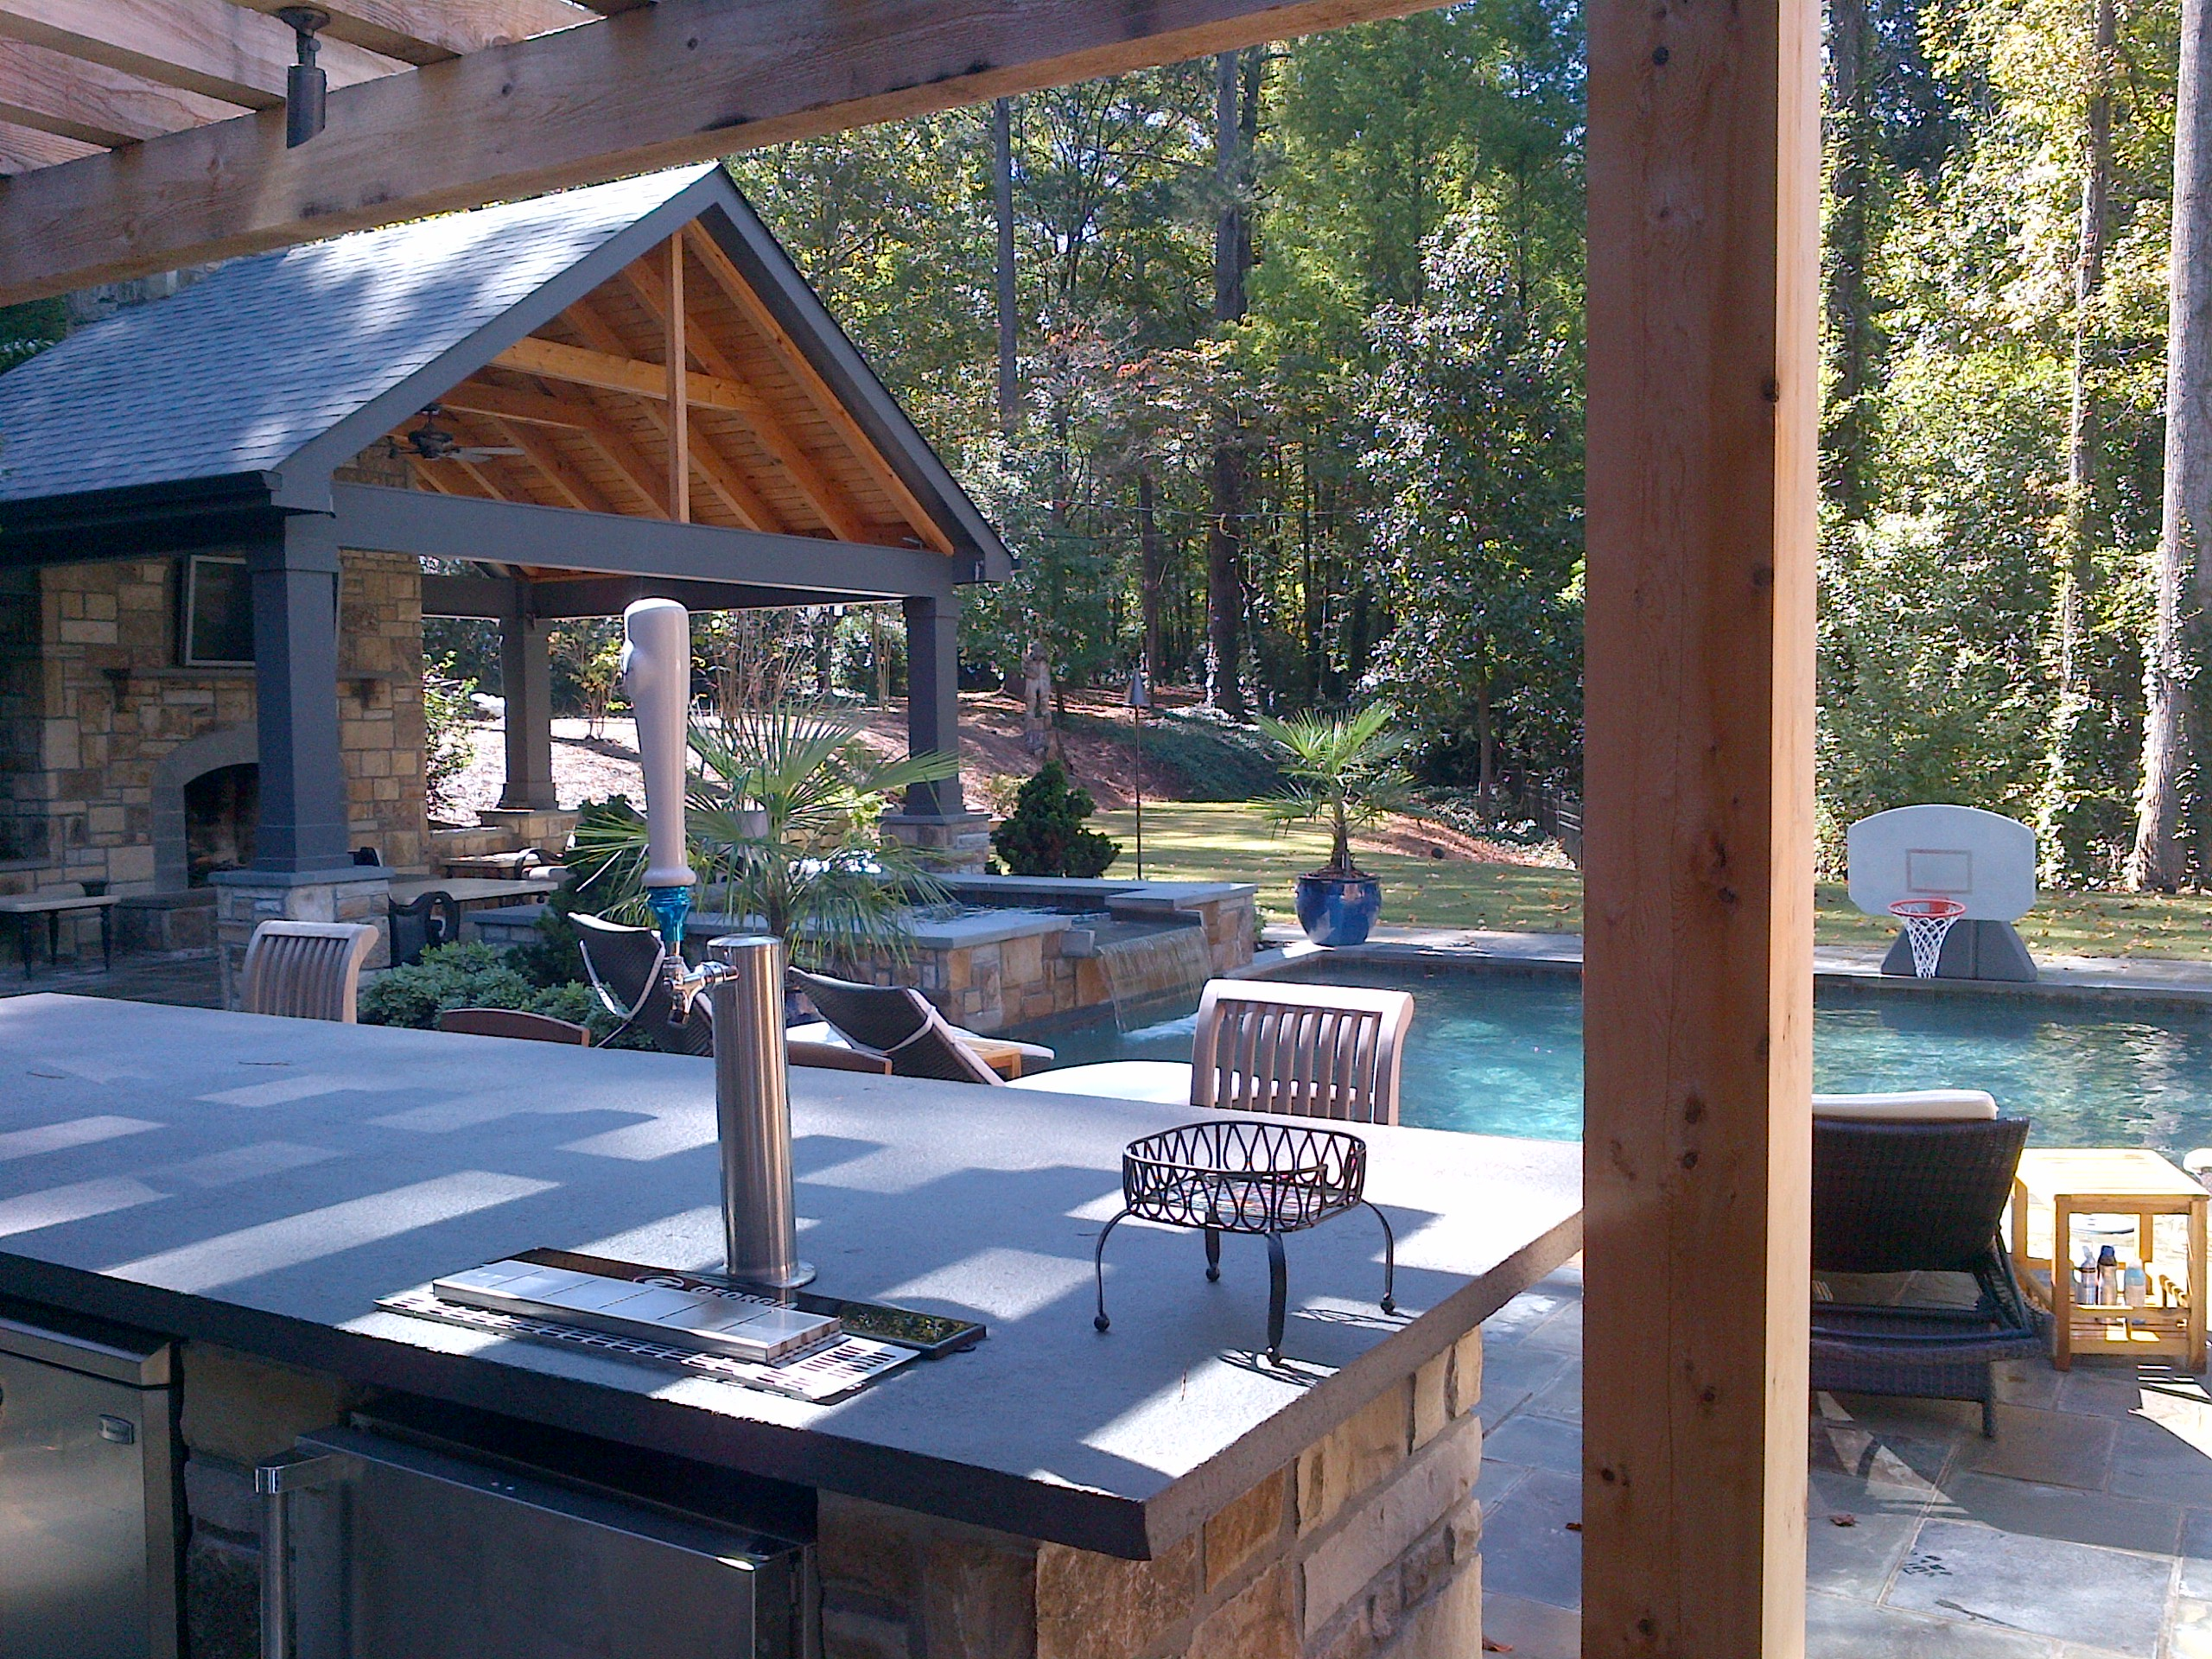 Outdoor kitchen with amazing pool